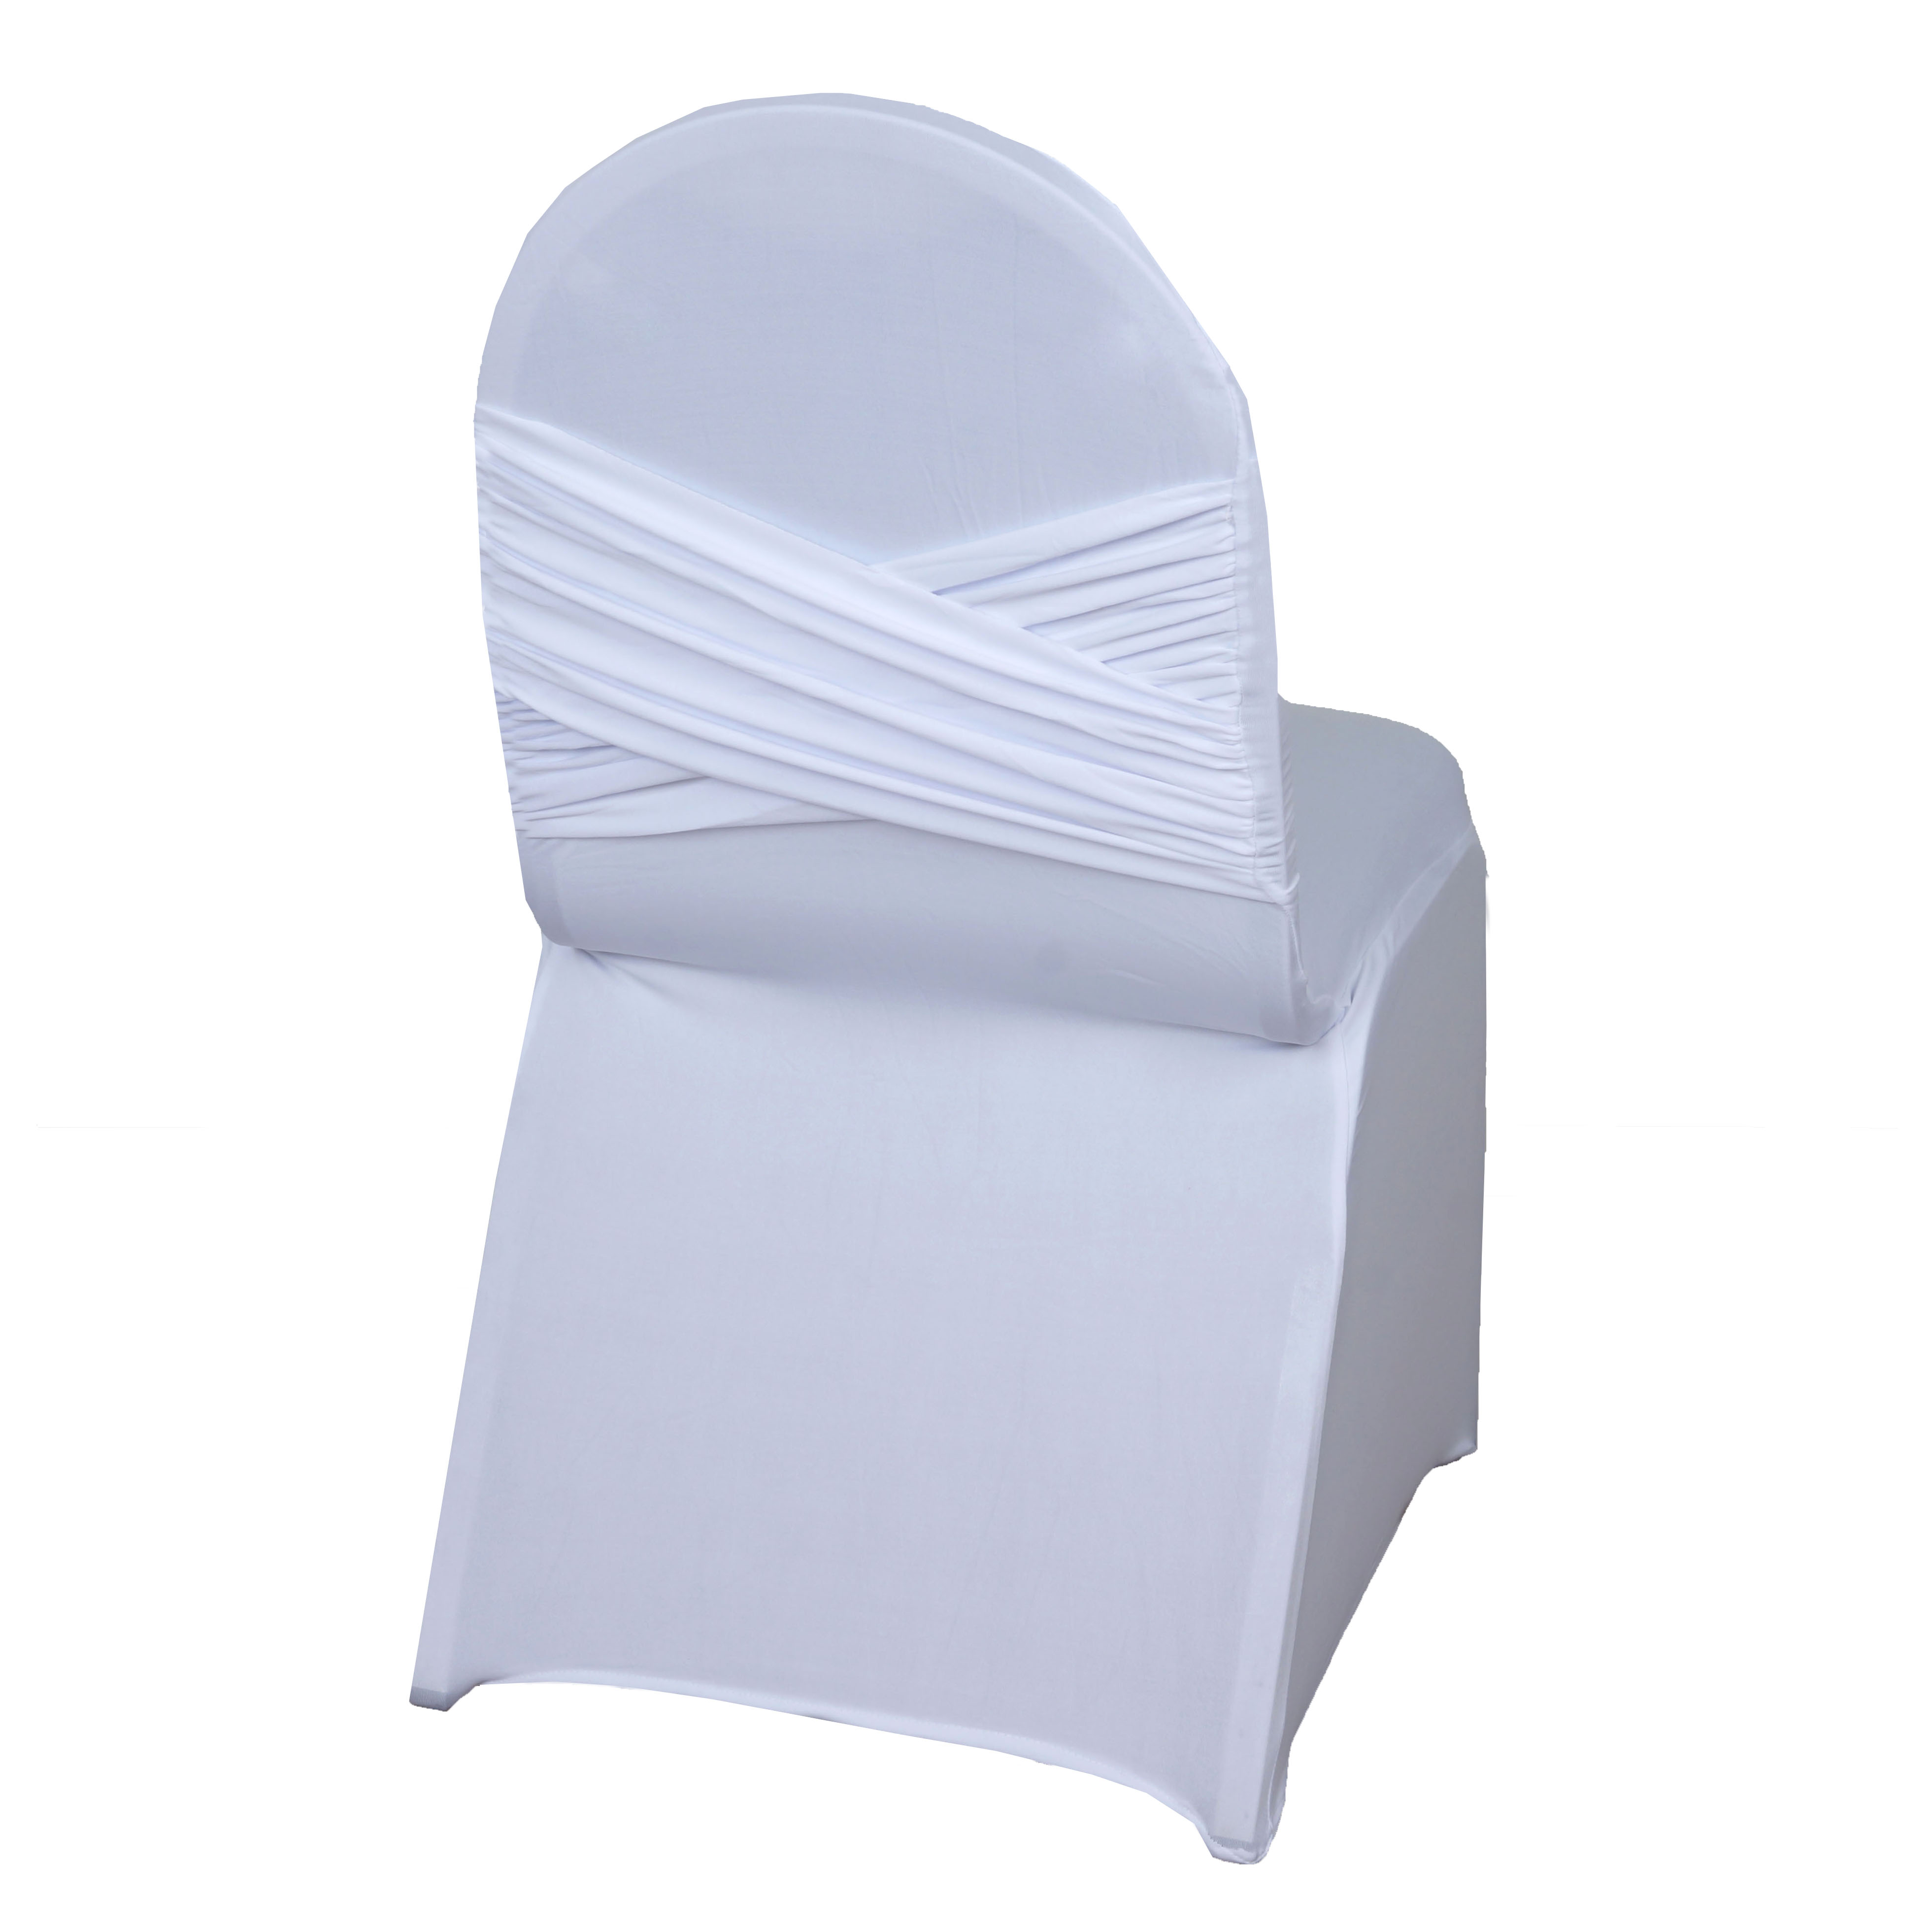 100 pcs madrid banquet chair covers with crisscross design for Chair covers for wedding design